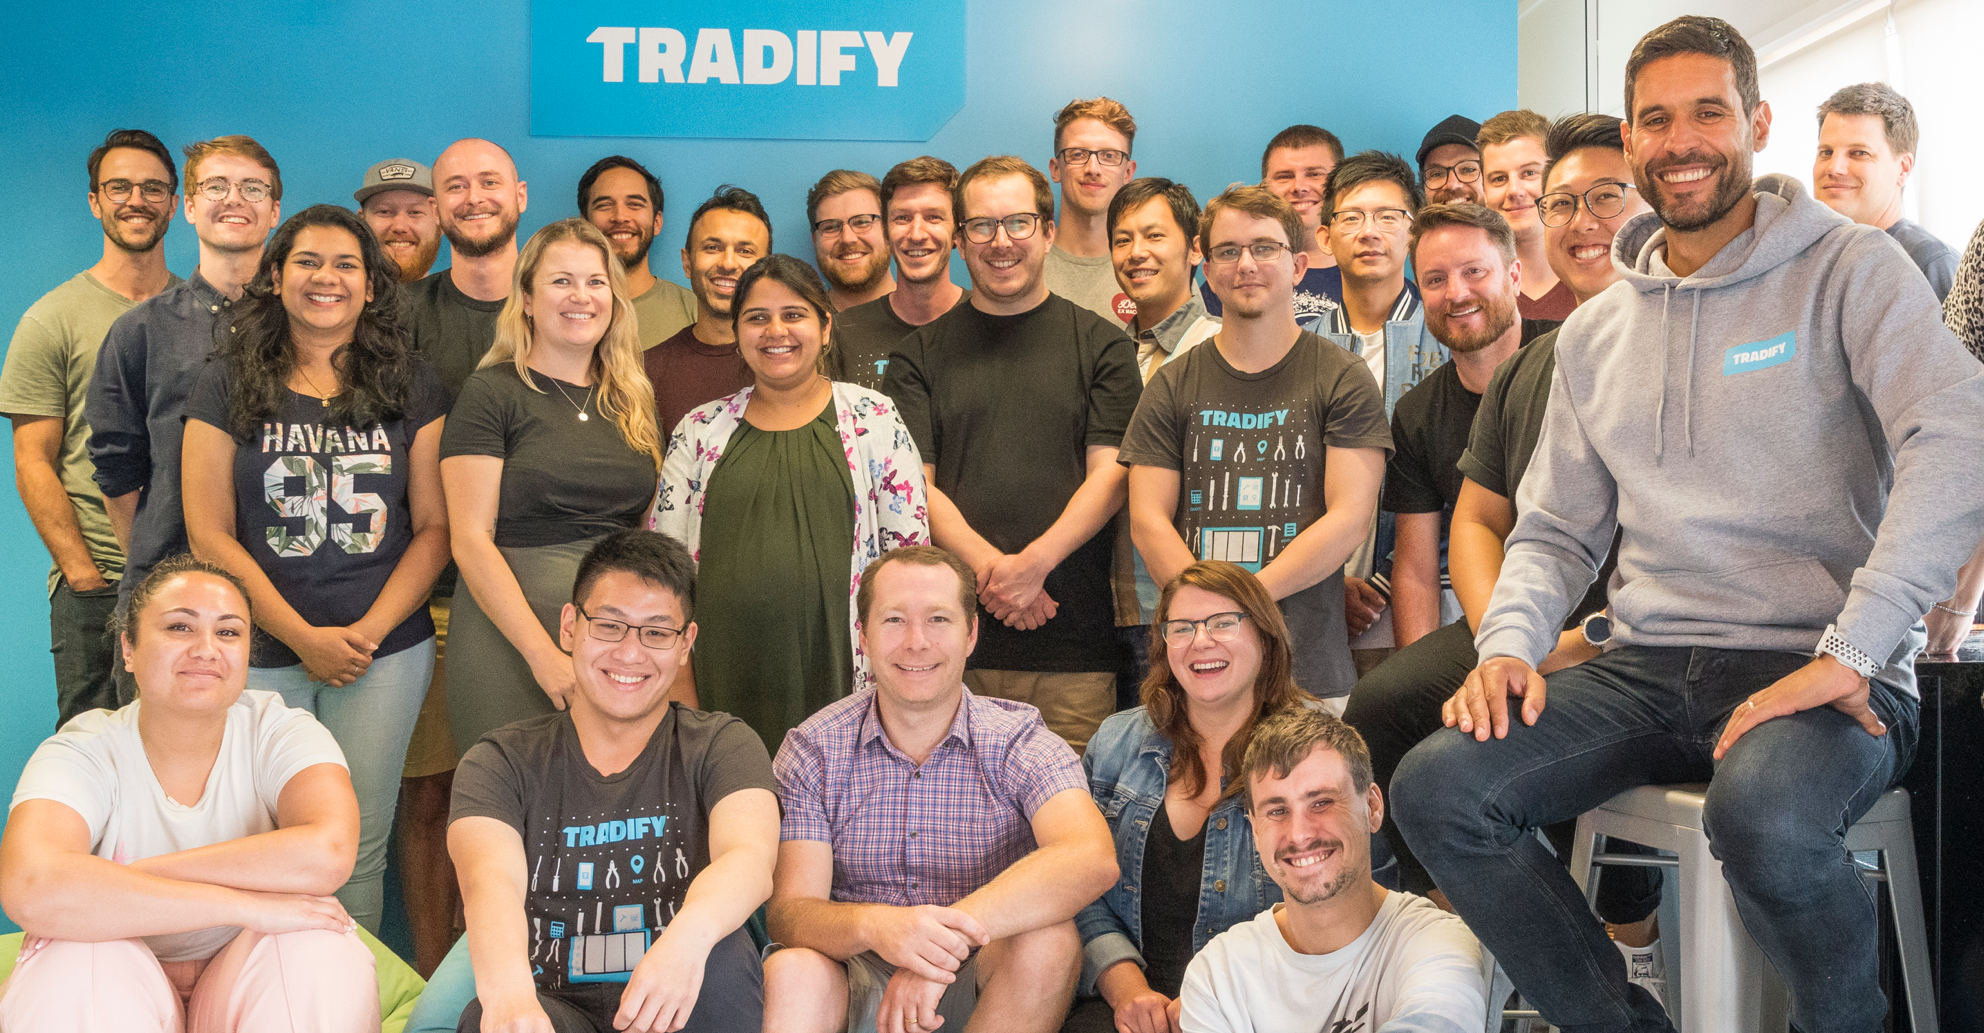 Tradify team photo - a large group of smiling, hard-working people